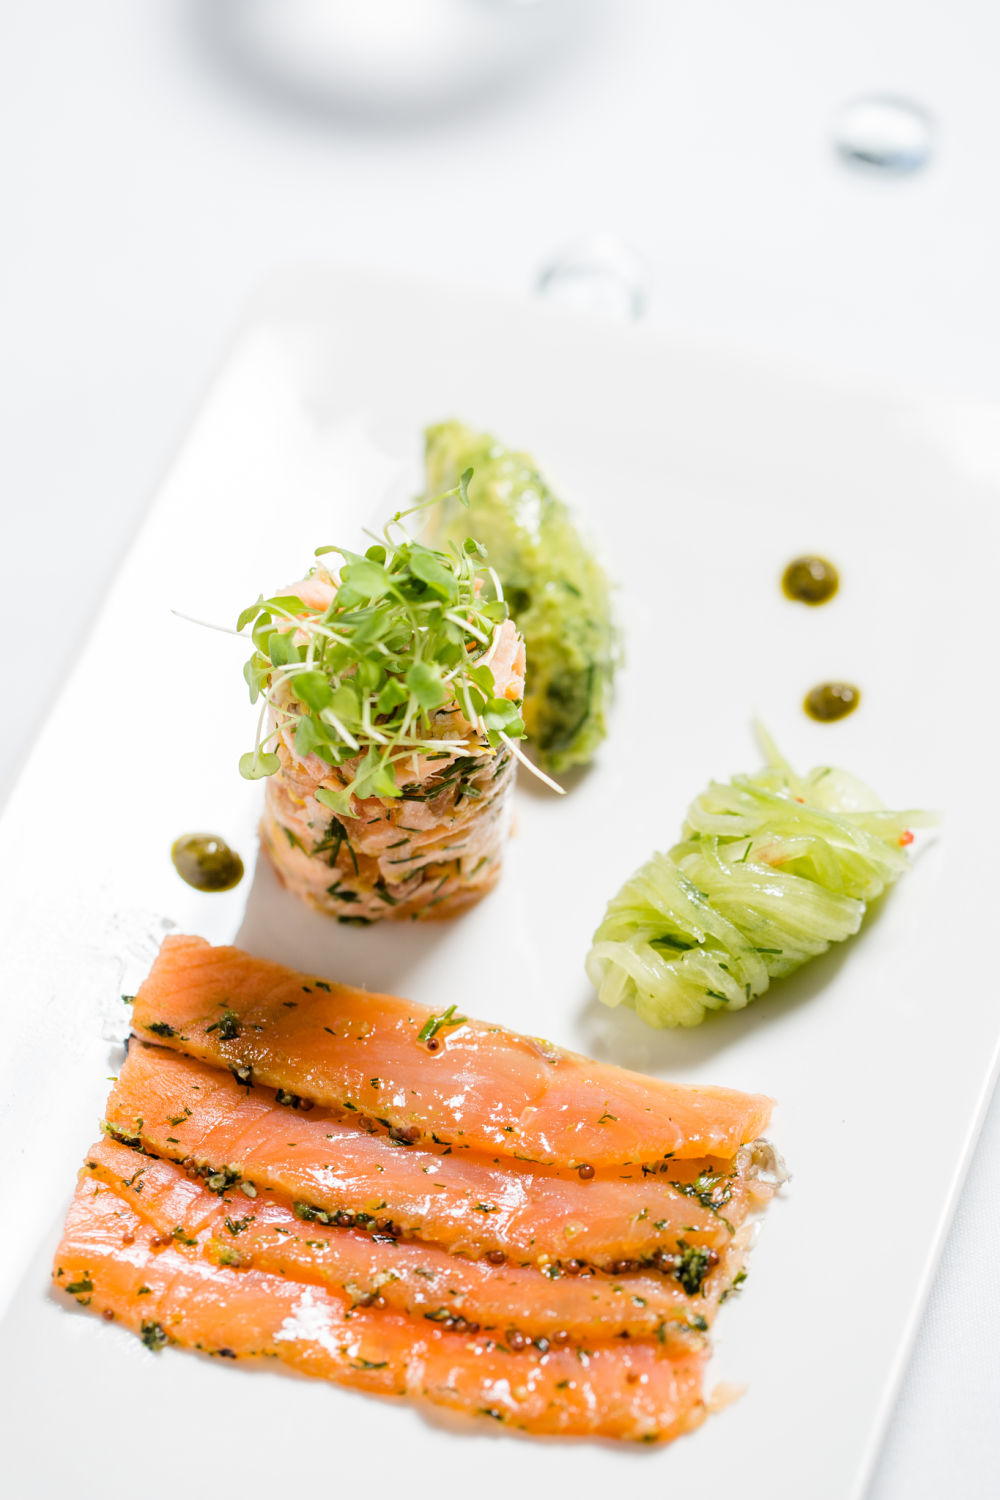 Home cured gravlax & smoked trout with crushed avocado & cucumber pickle